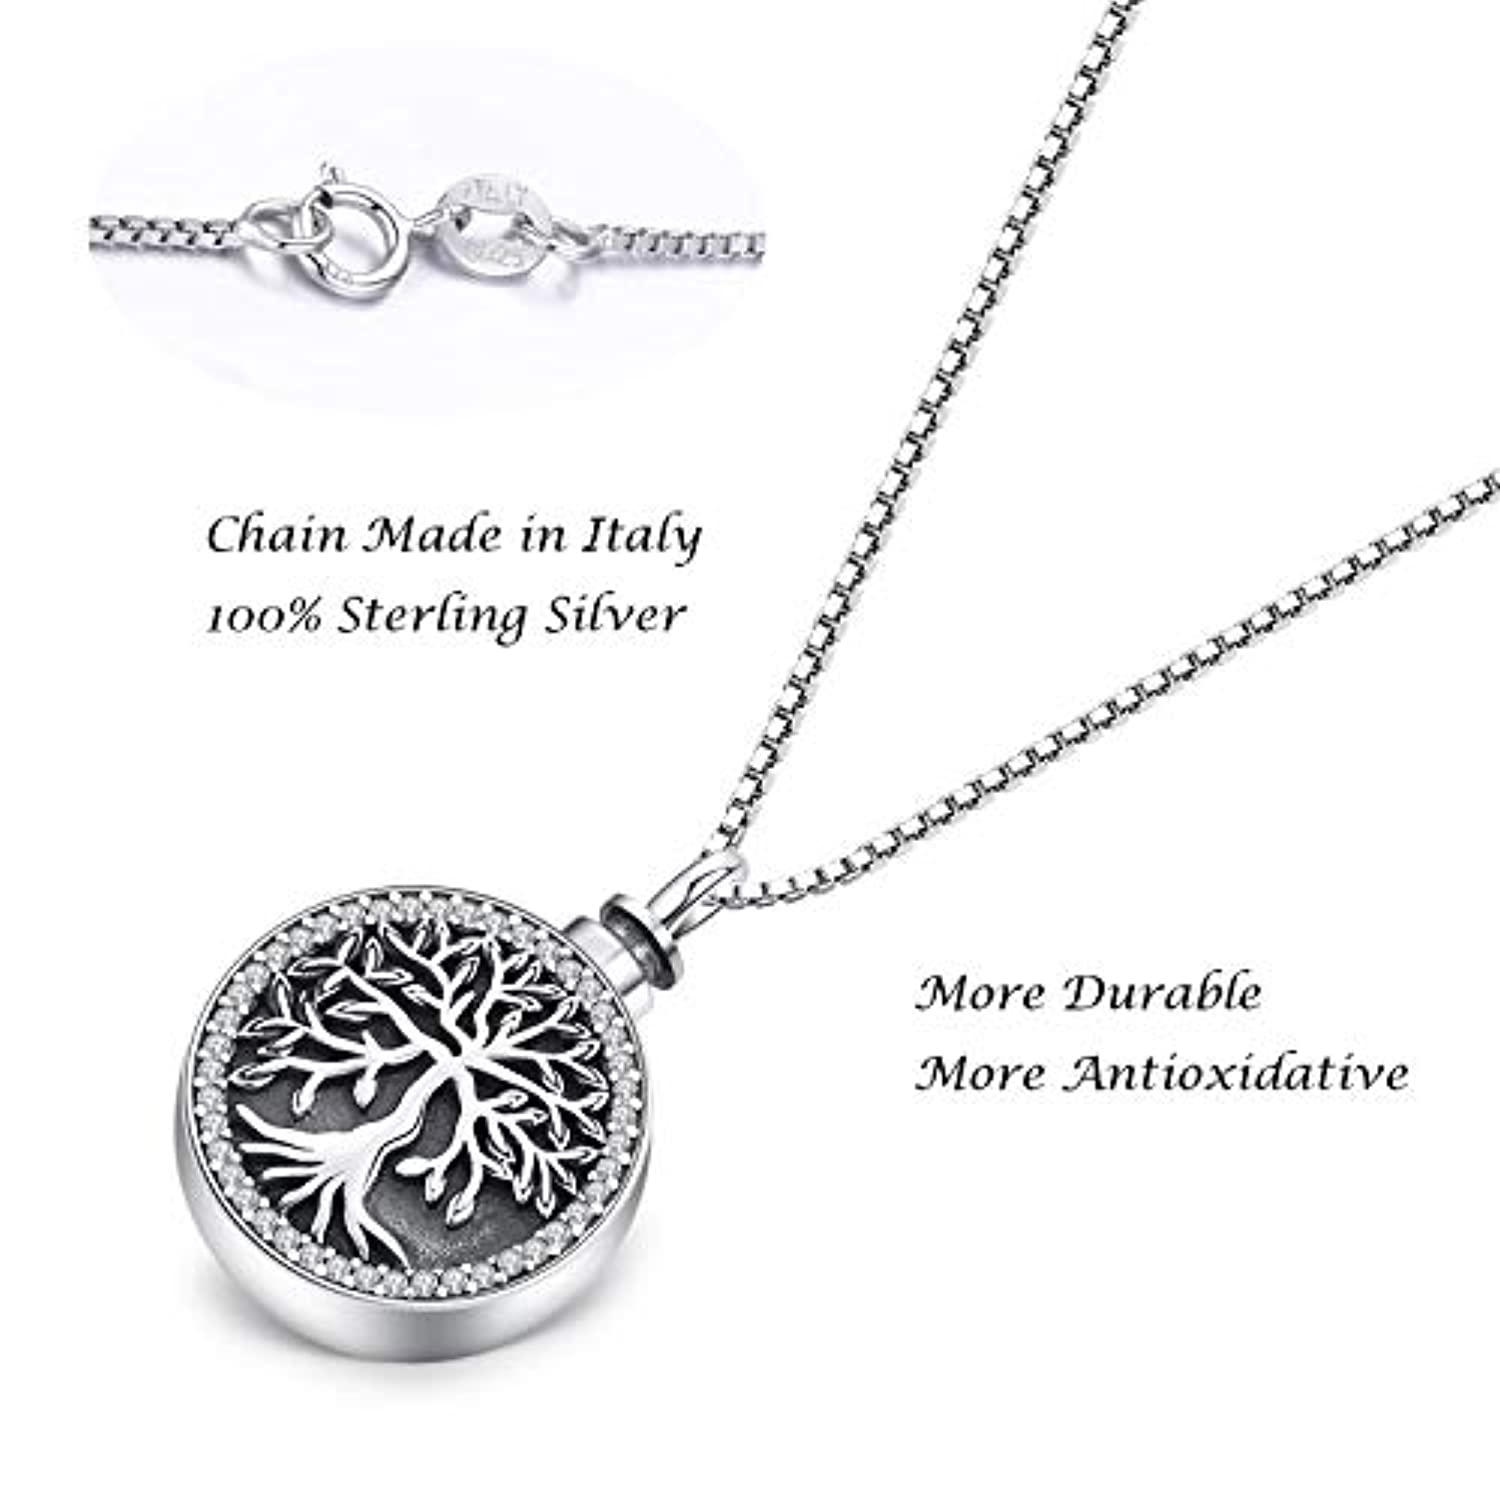 S925 Sterling Silver Necklace for Memorial Ashes, Tree of Life Pendant for Ashes Jewelry- You Always in My Heart